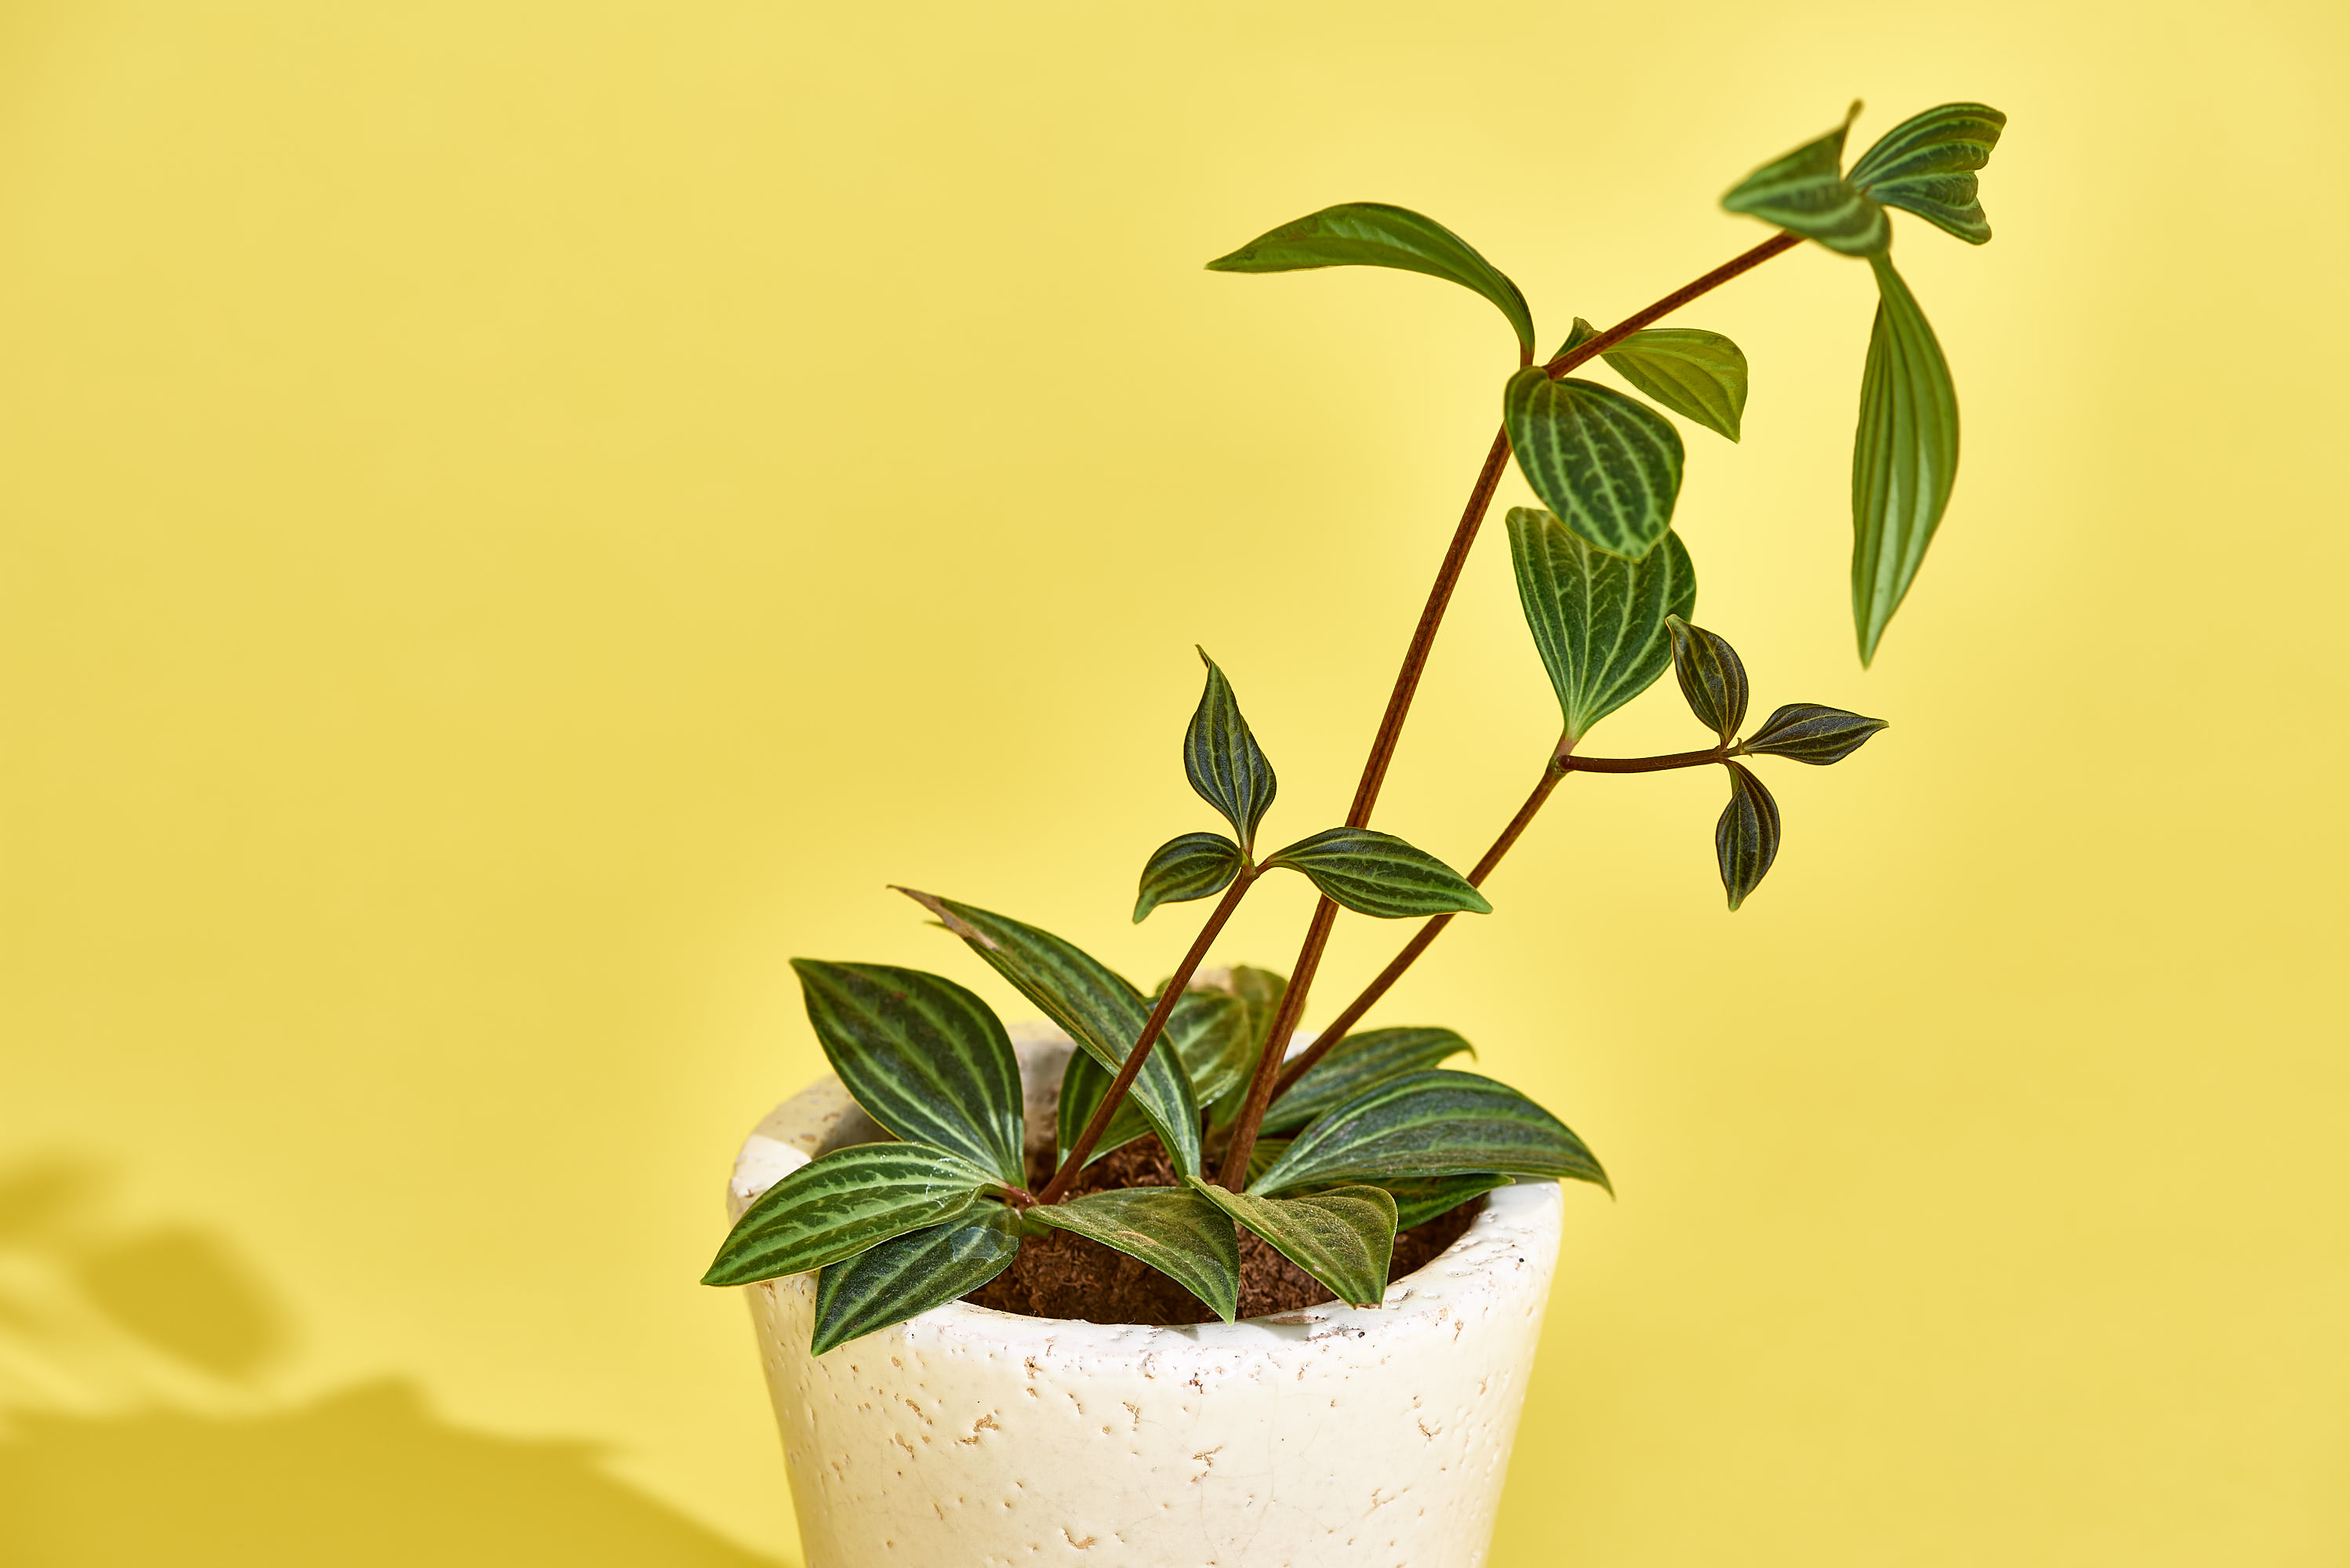 Peperomia Plant Care How To Grow Maintain Peperomias Apartment Therapy